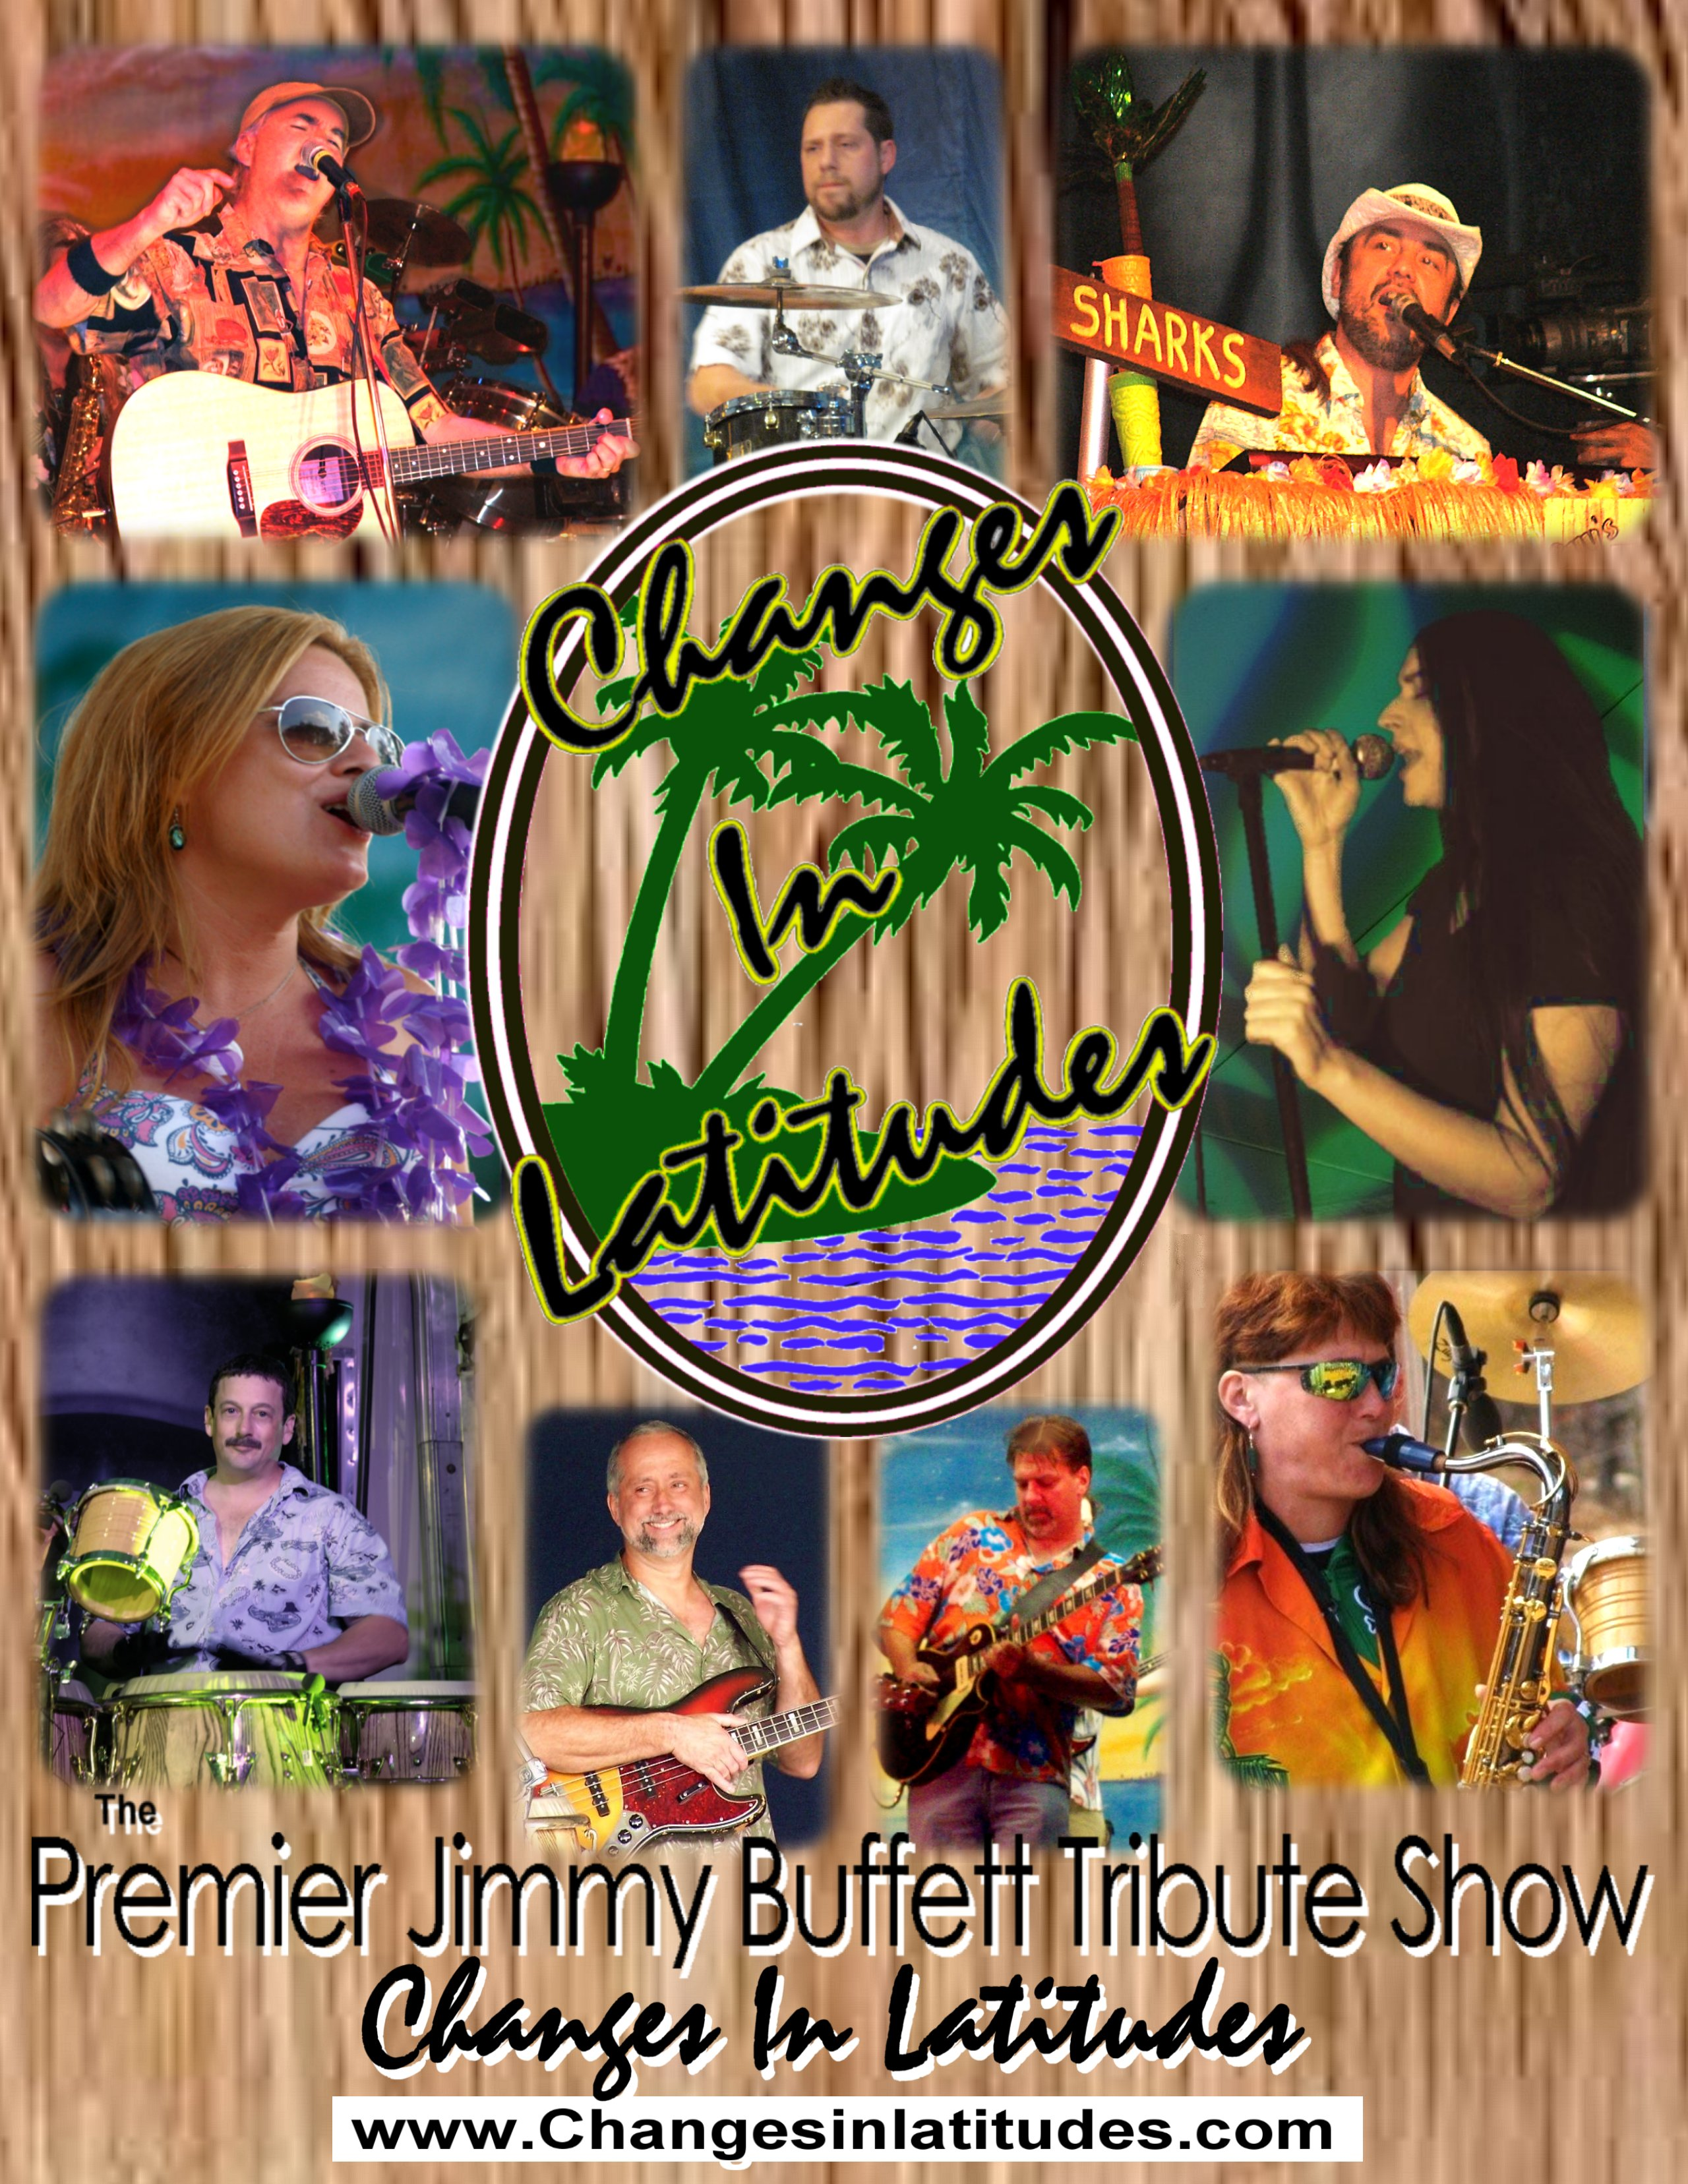 Changes In Latitudes - the premier Jimmy Buffett tribute show